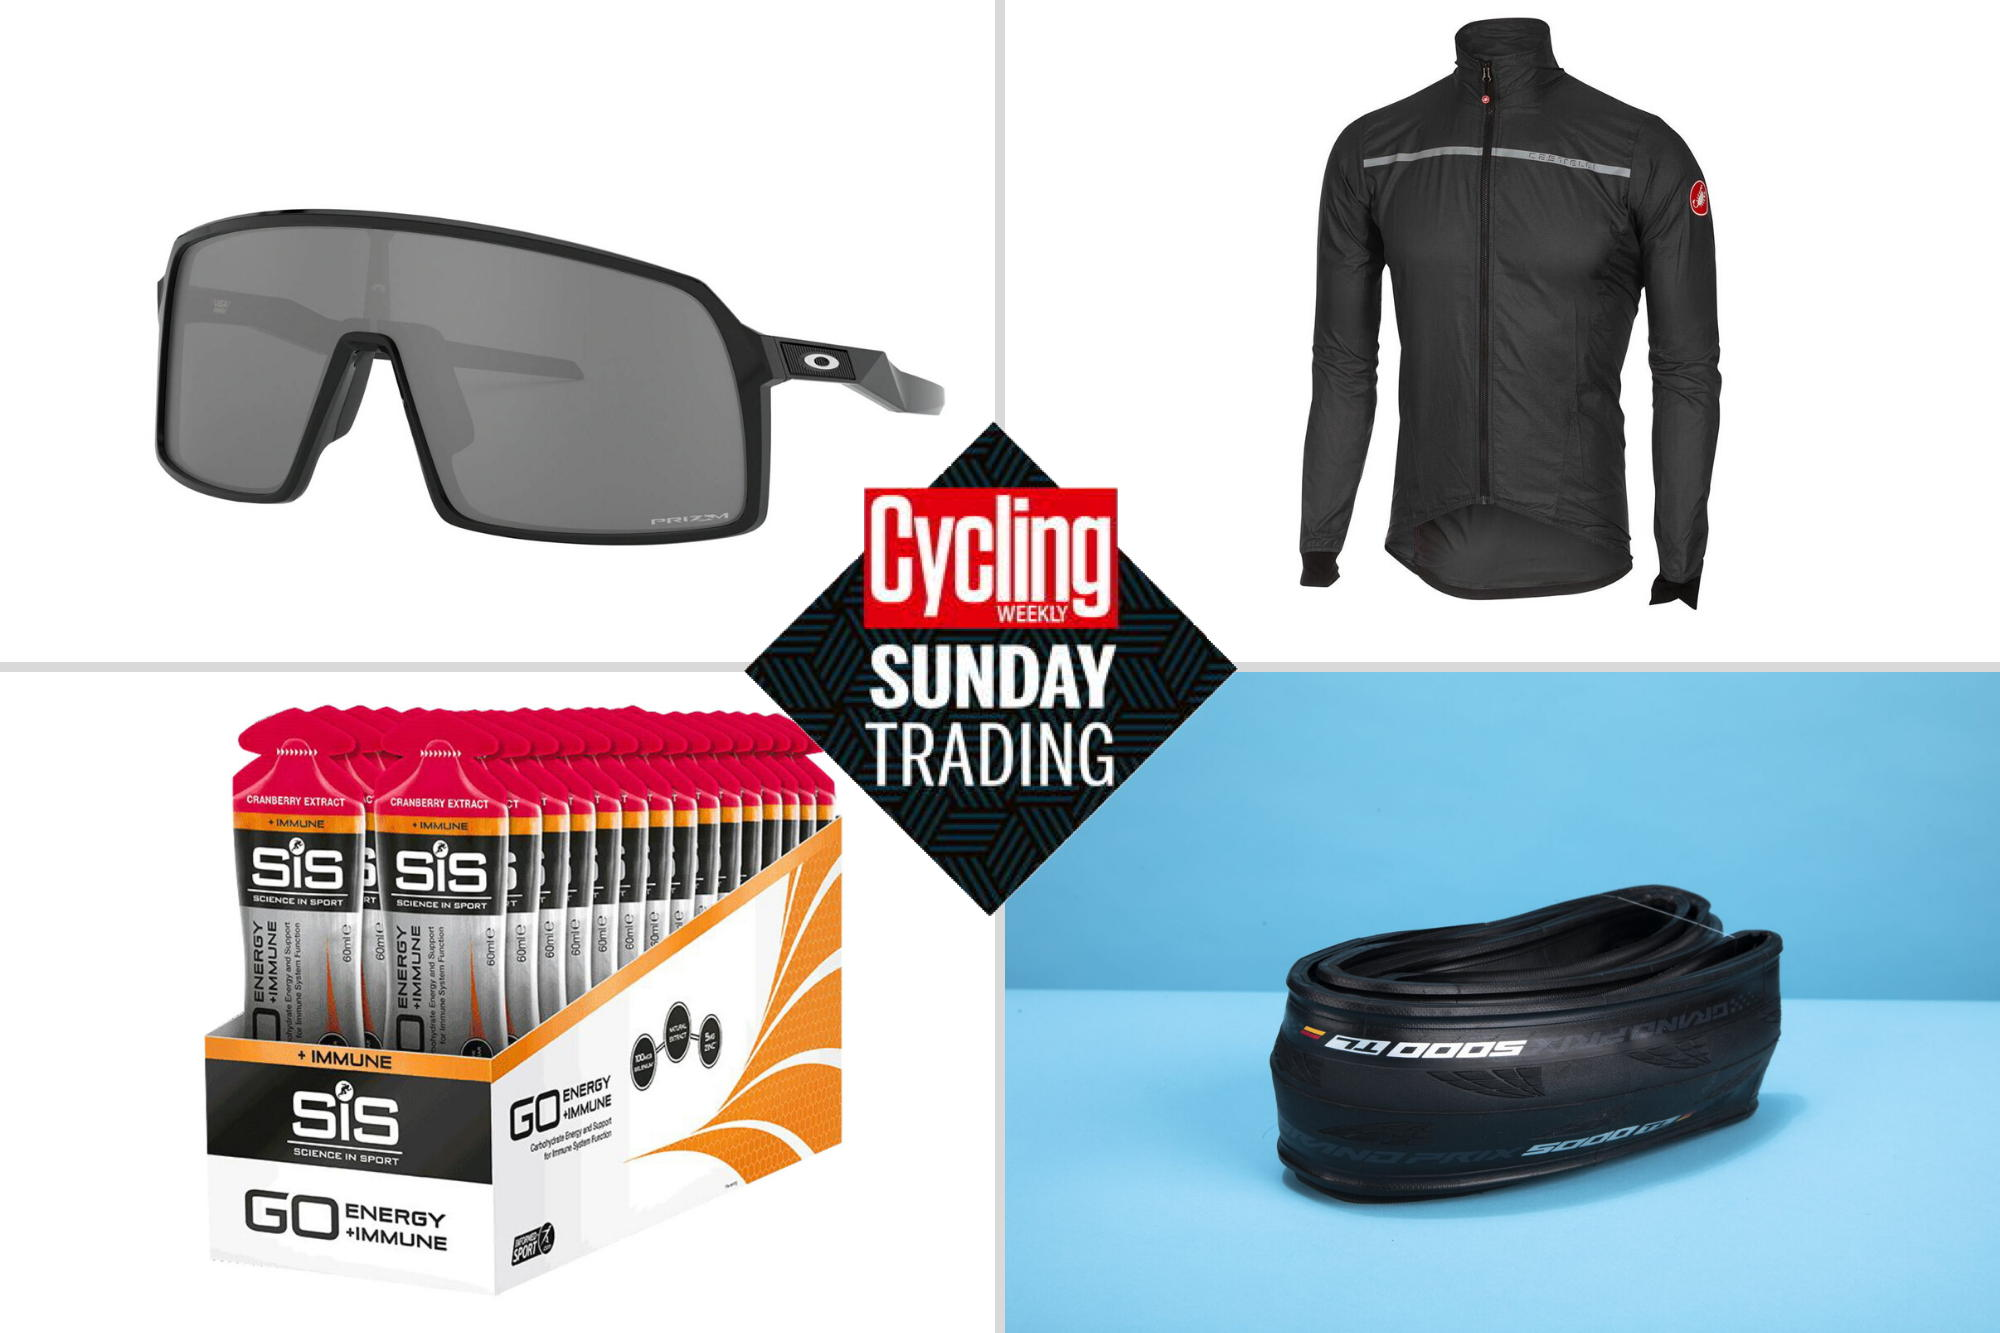 Sunday trading: Oakley glasses for less than £100 and many more deals - Cycling Weekly